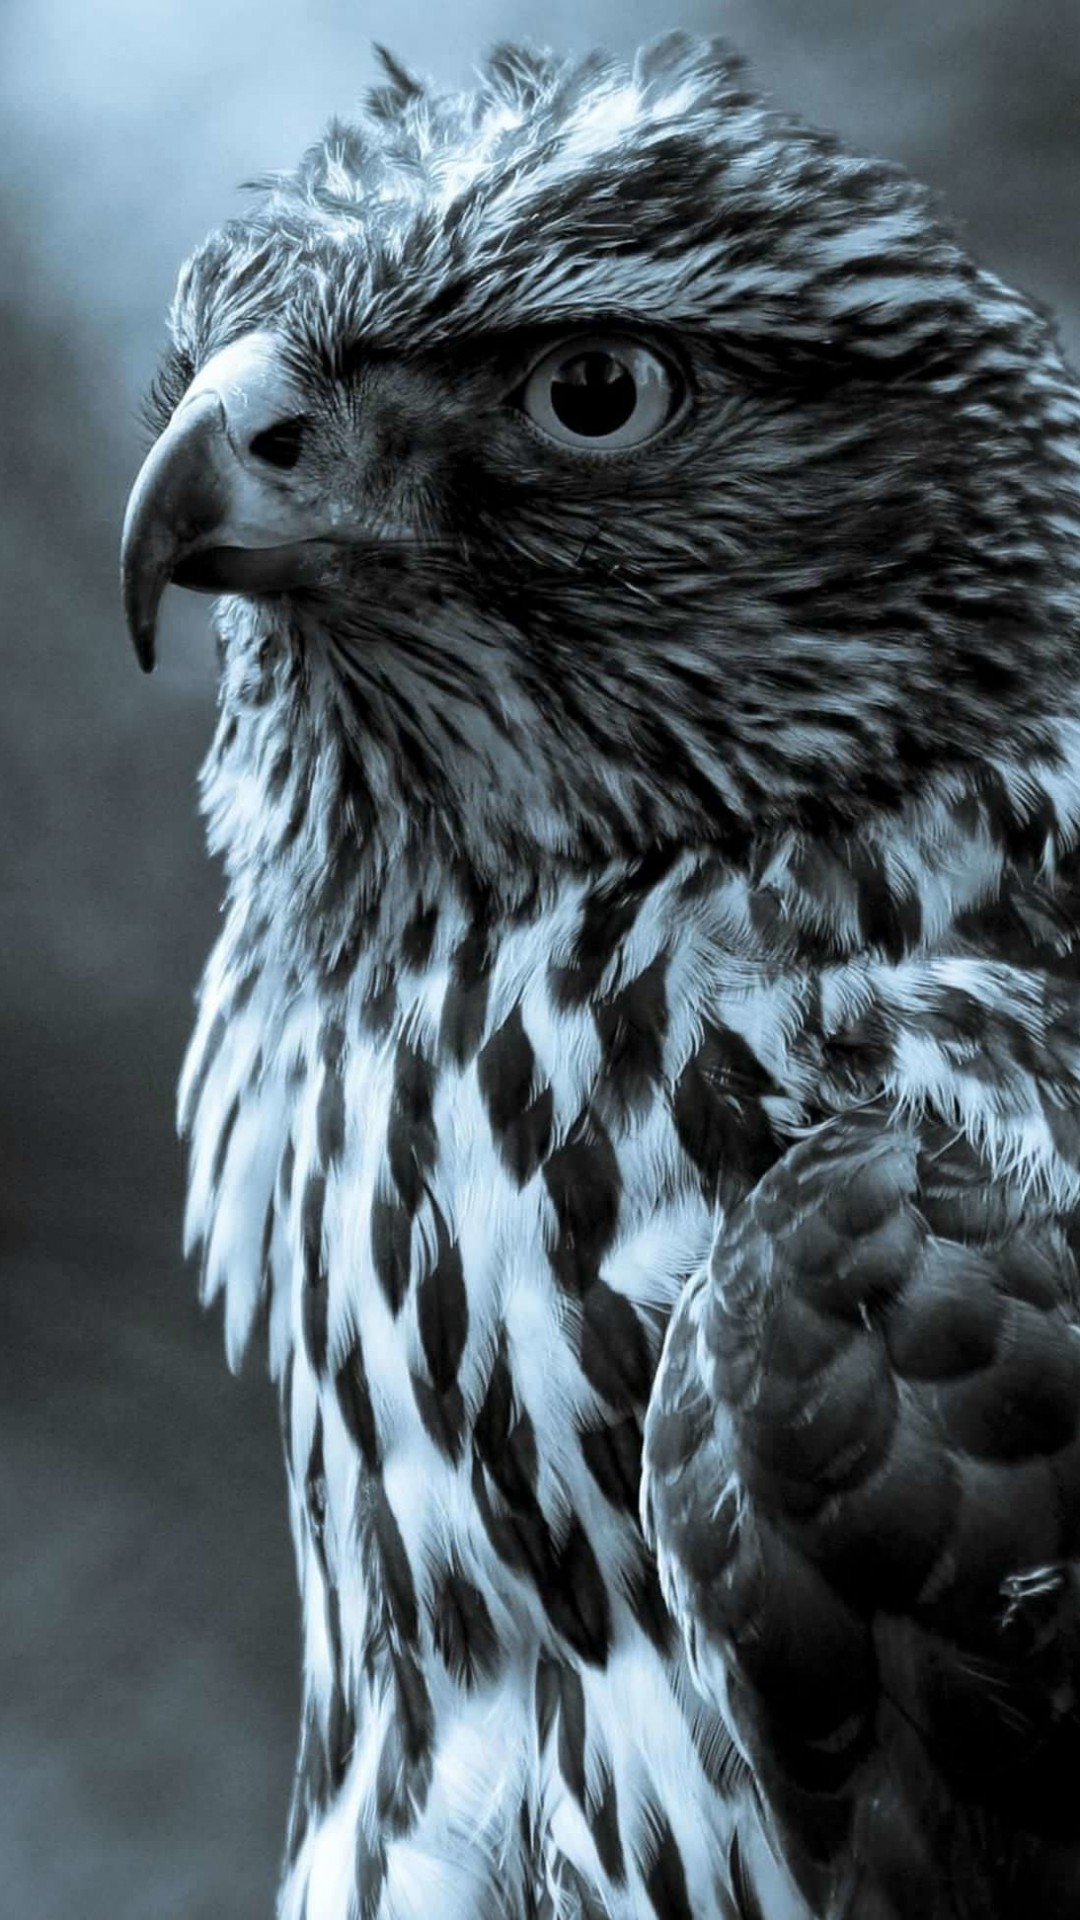 Hawk in monochrome Wallpaper for SAMSUNG Galaxy S4